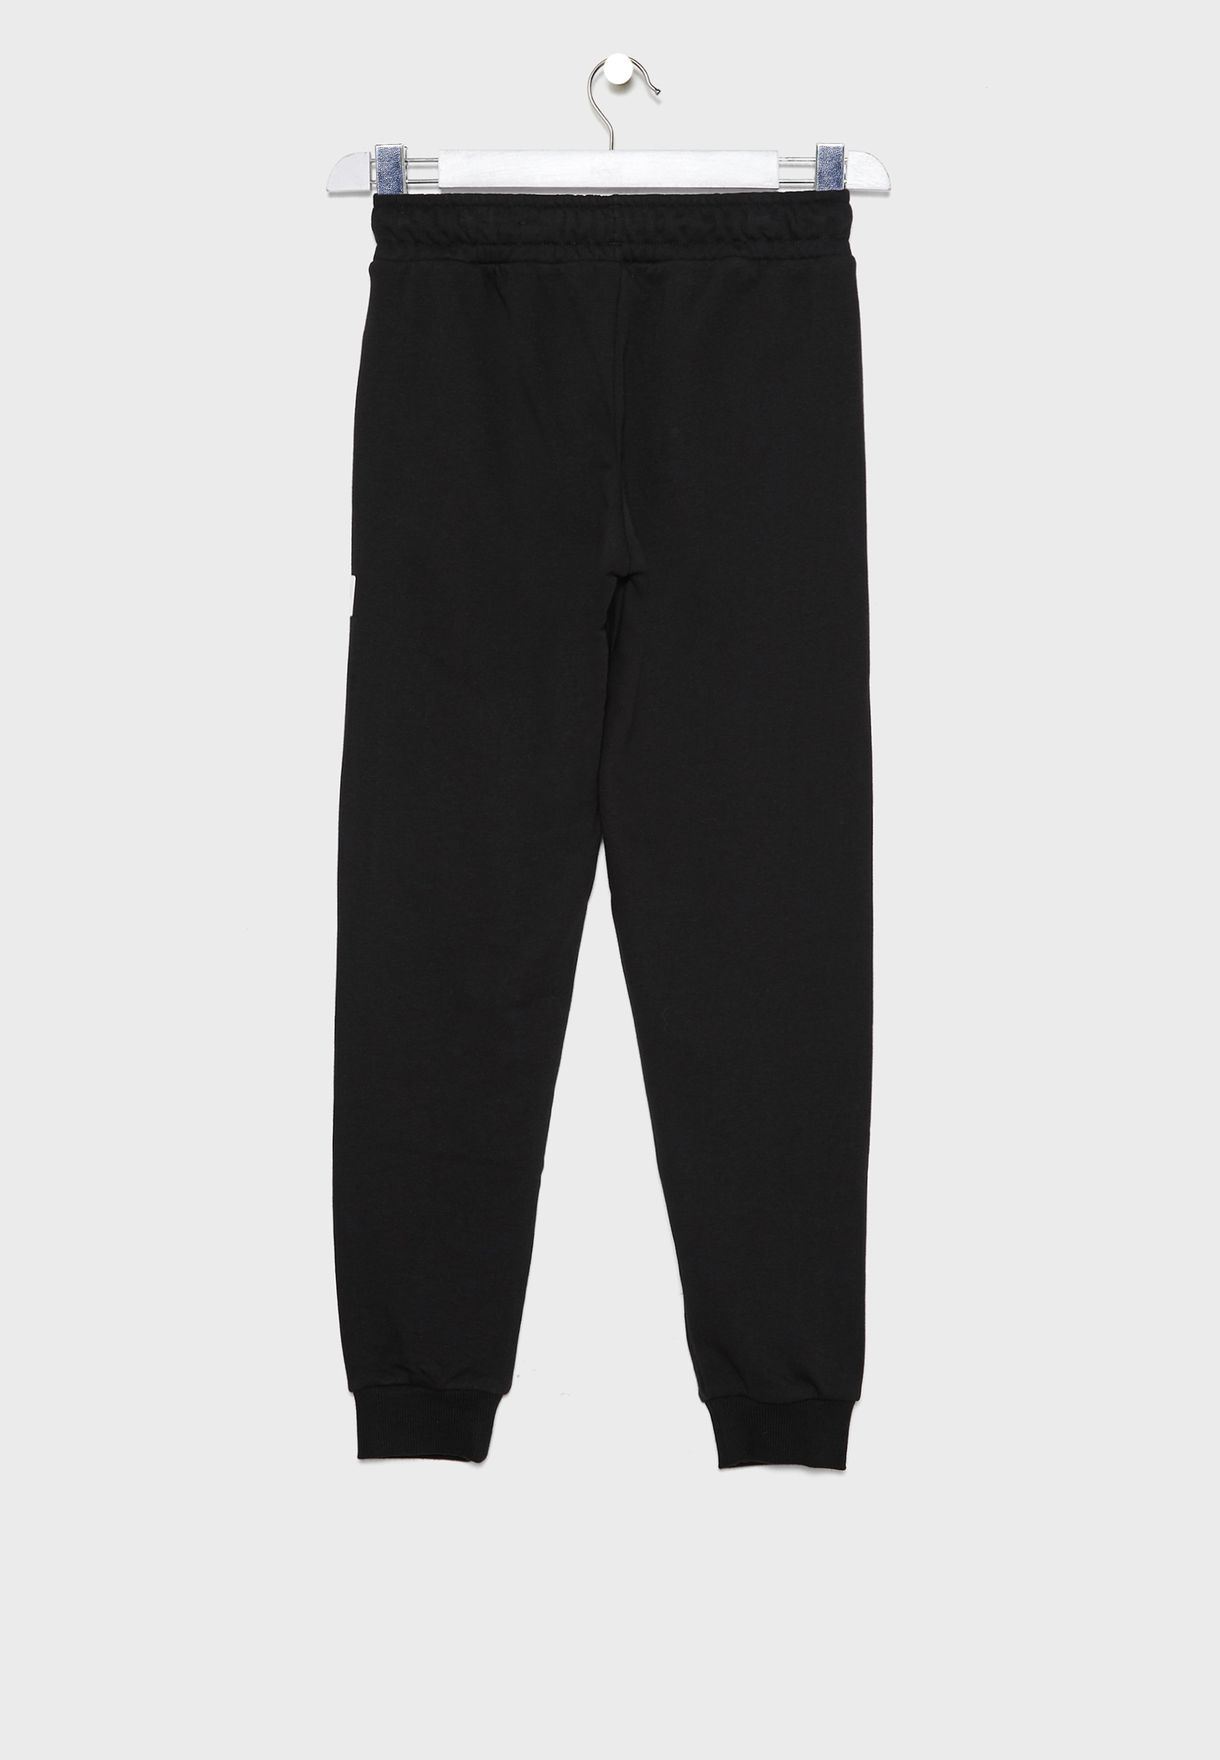 Alpha kids sweatpants